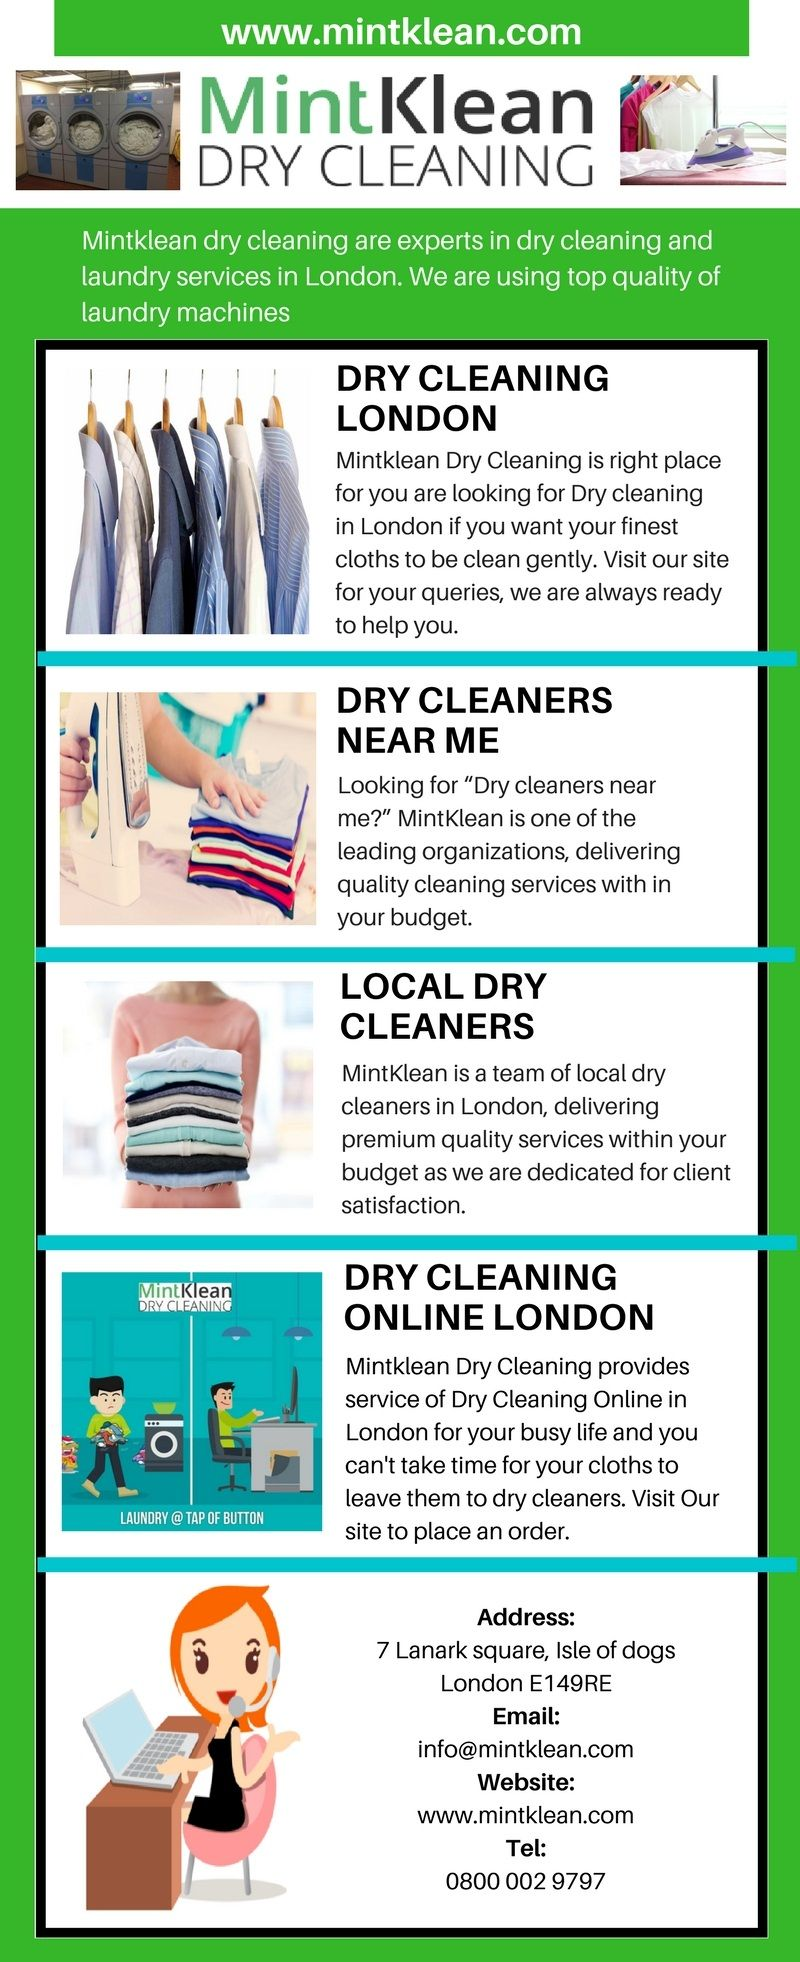 Pin by Mintklean.Dry Cleaning on Dry cleaners London